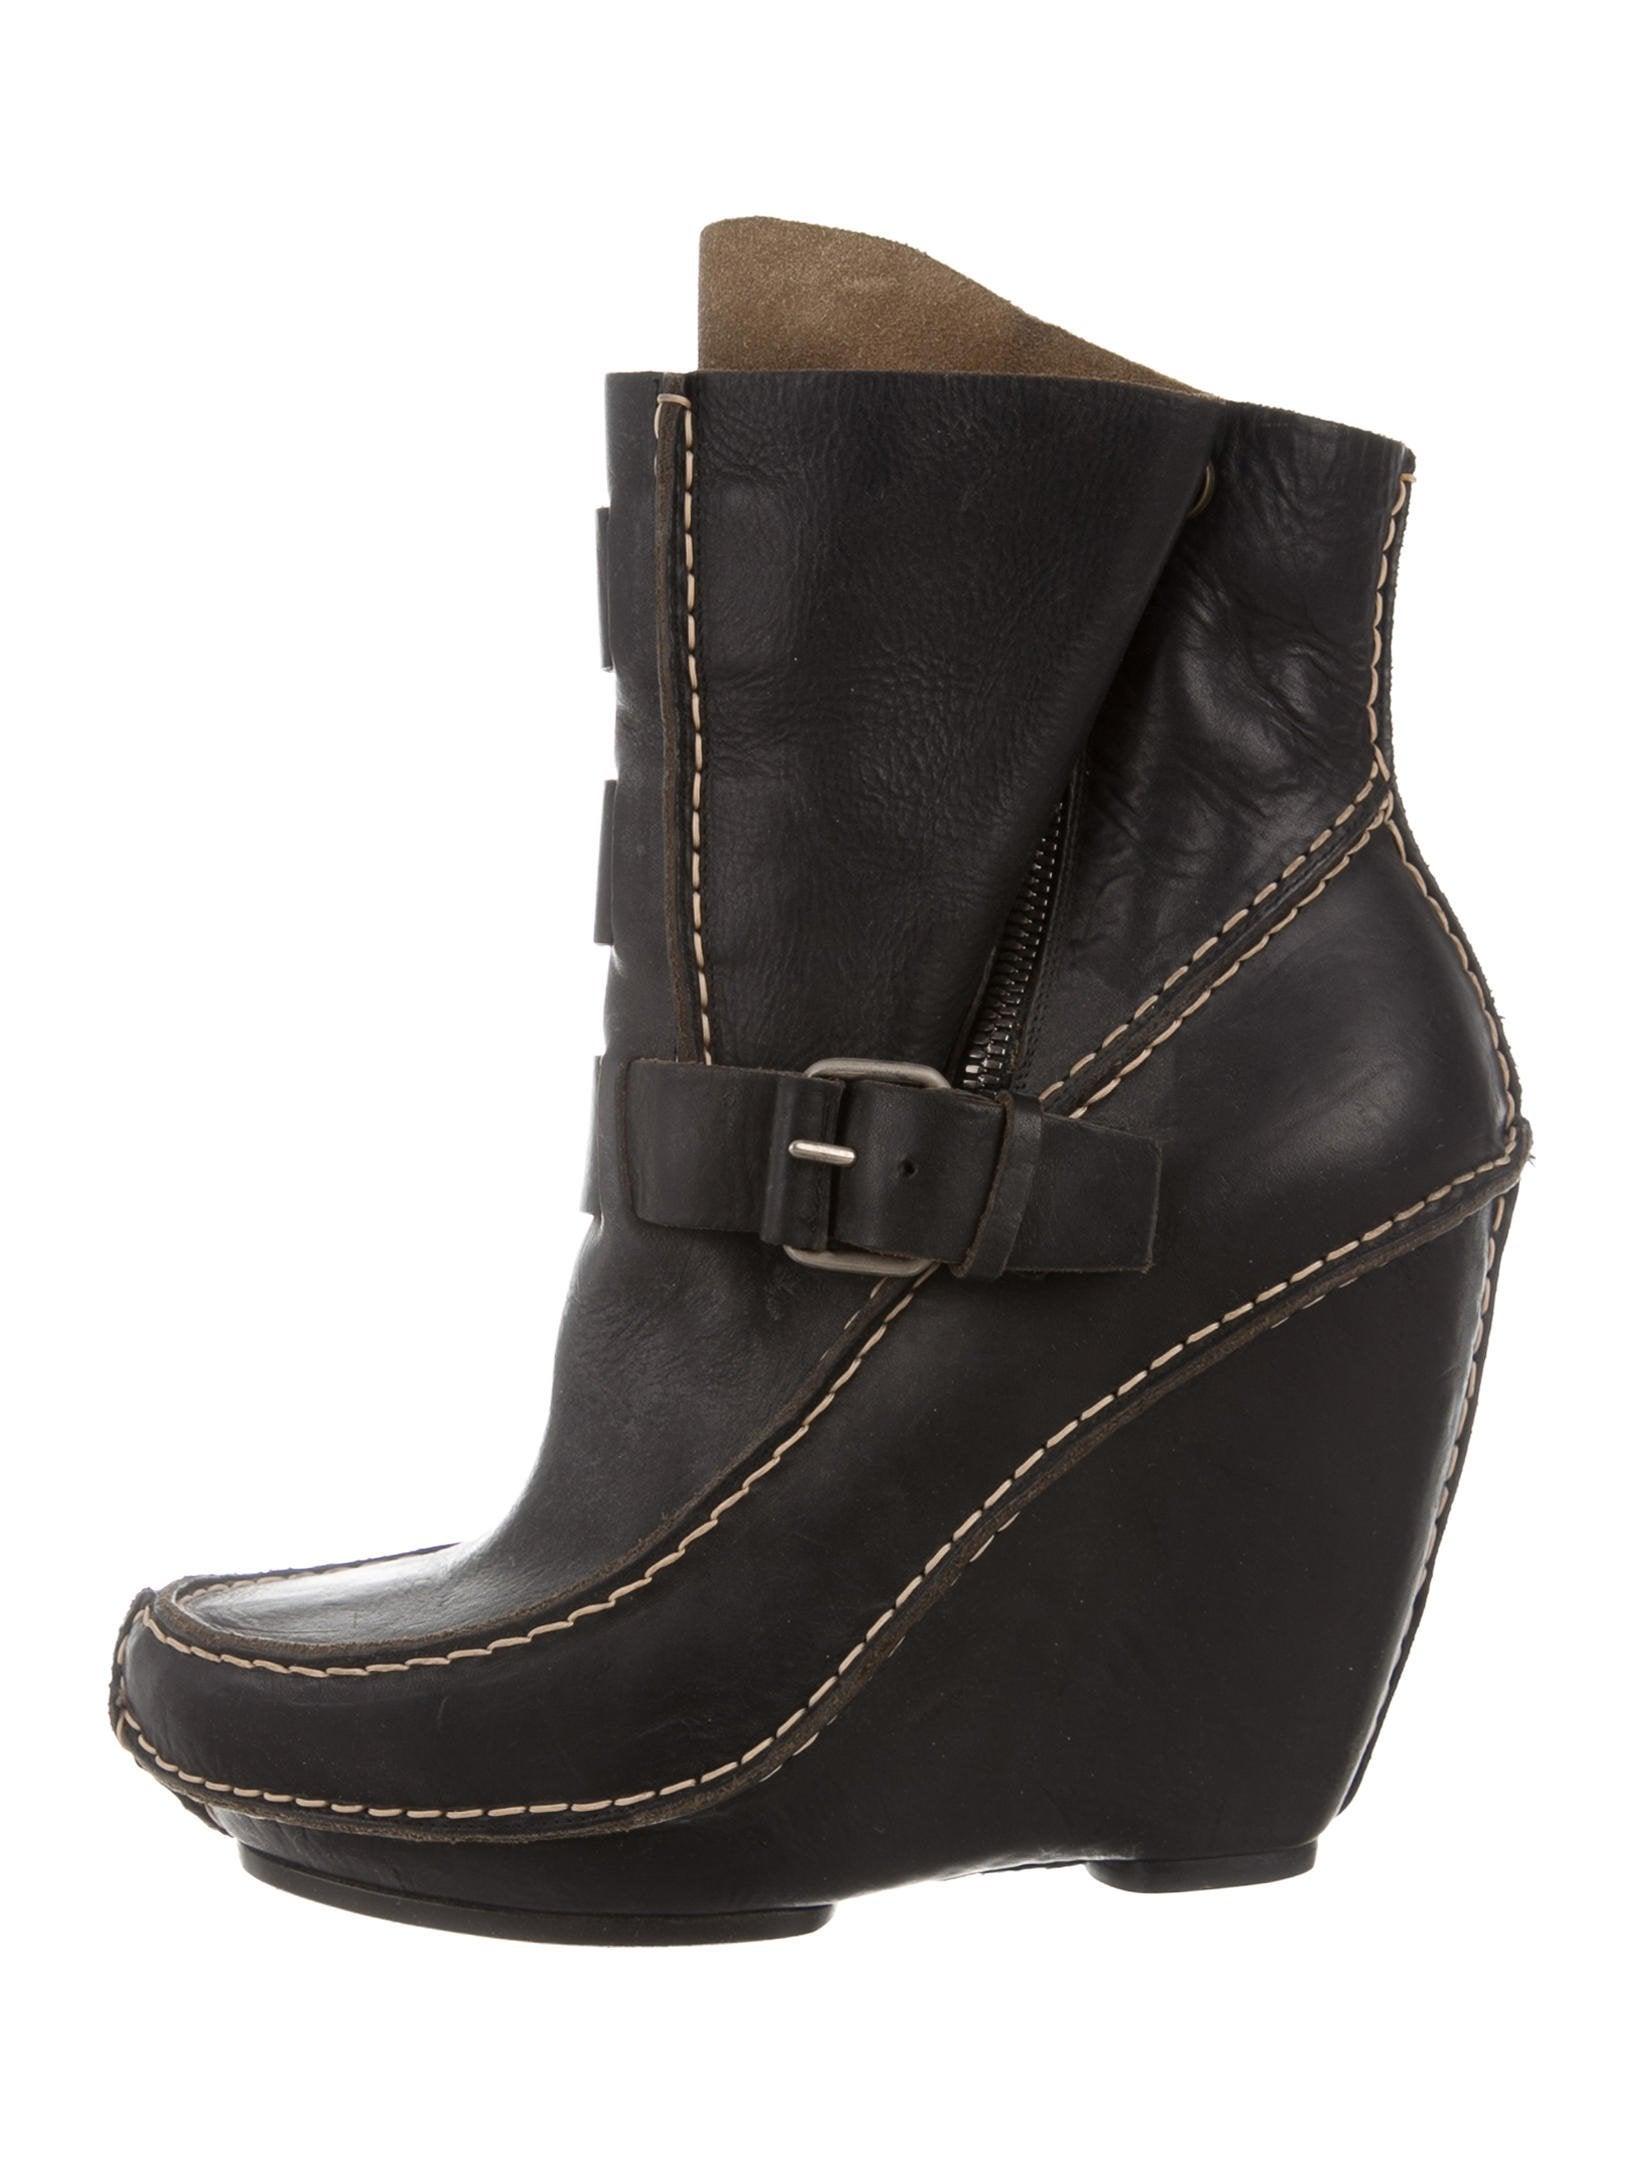 Shop all wedge booties at AKIRA. Find top brands like TOMS shoes, in the latest styles. Free shipping on orders $50+.